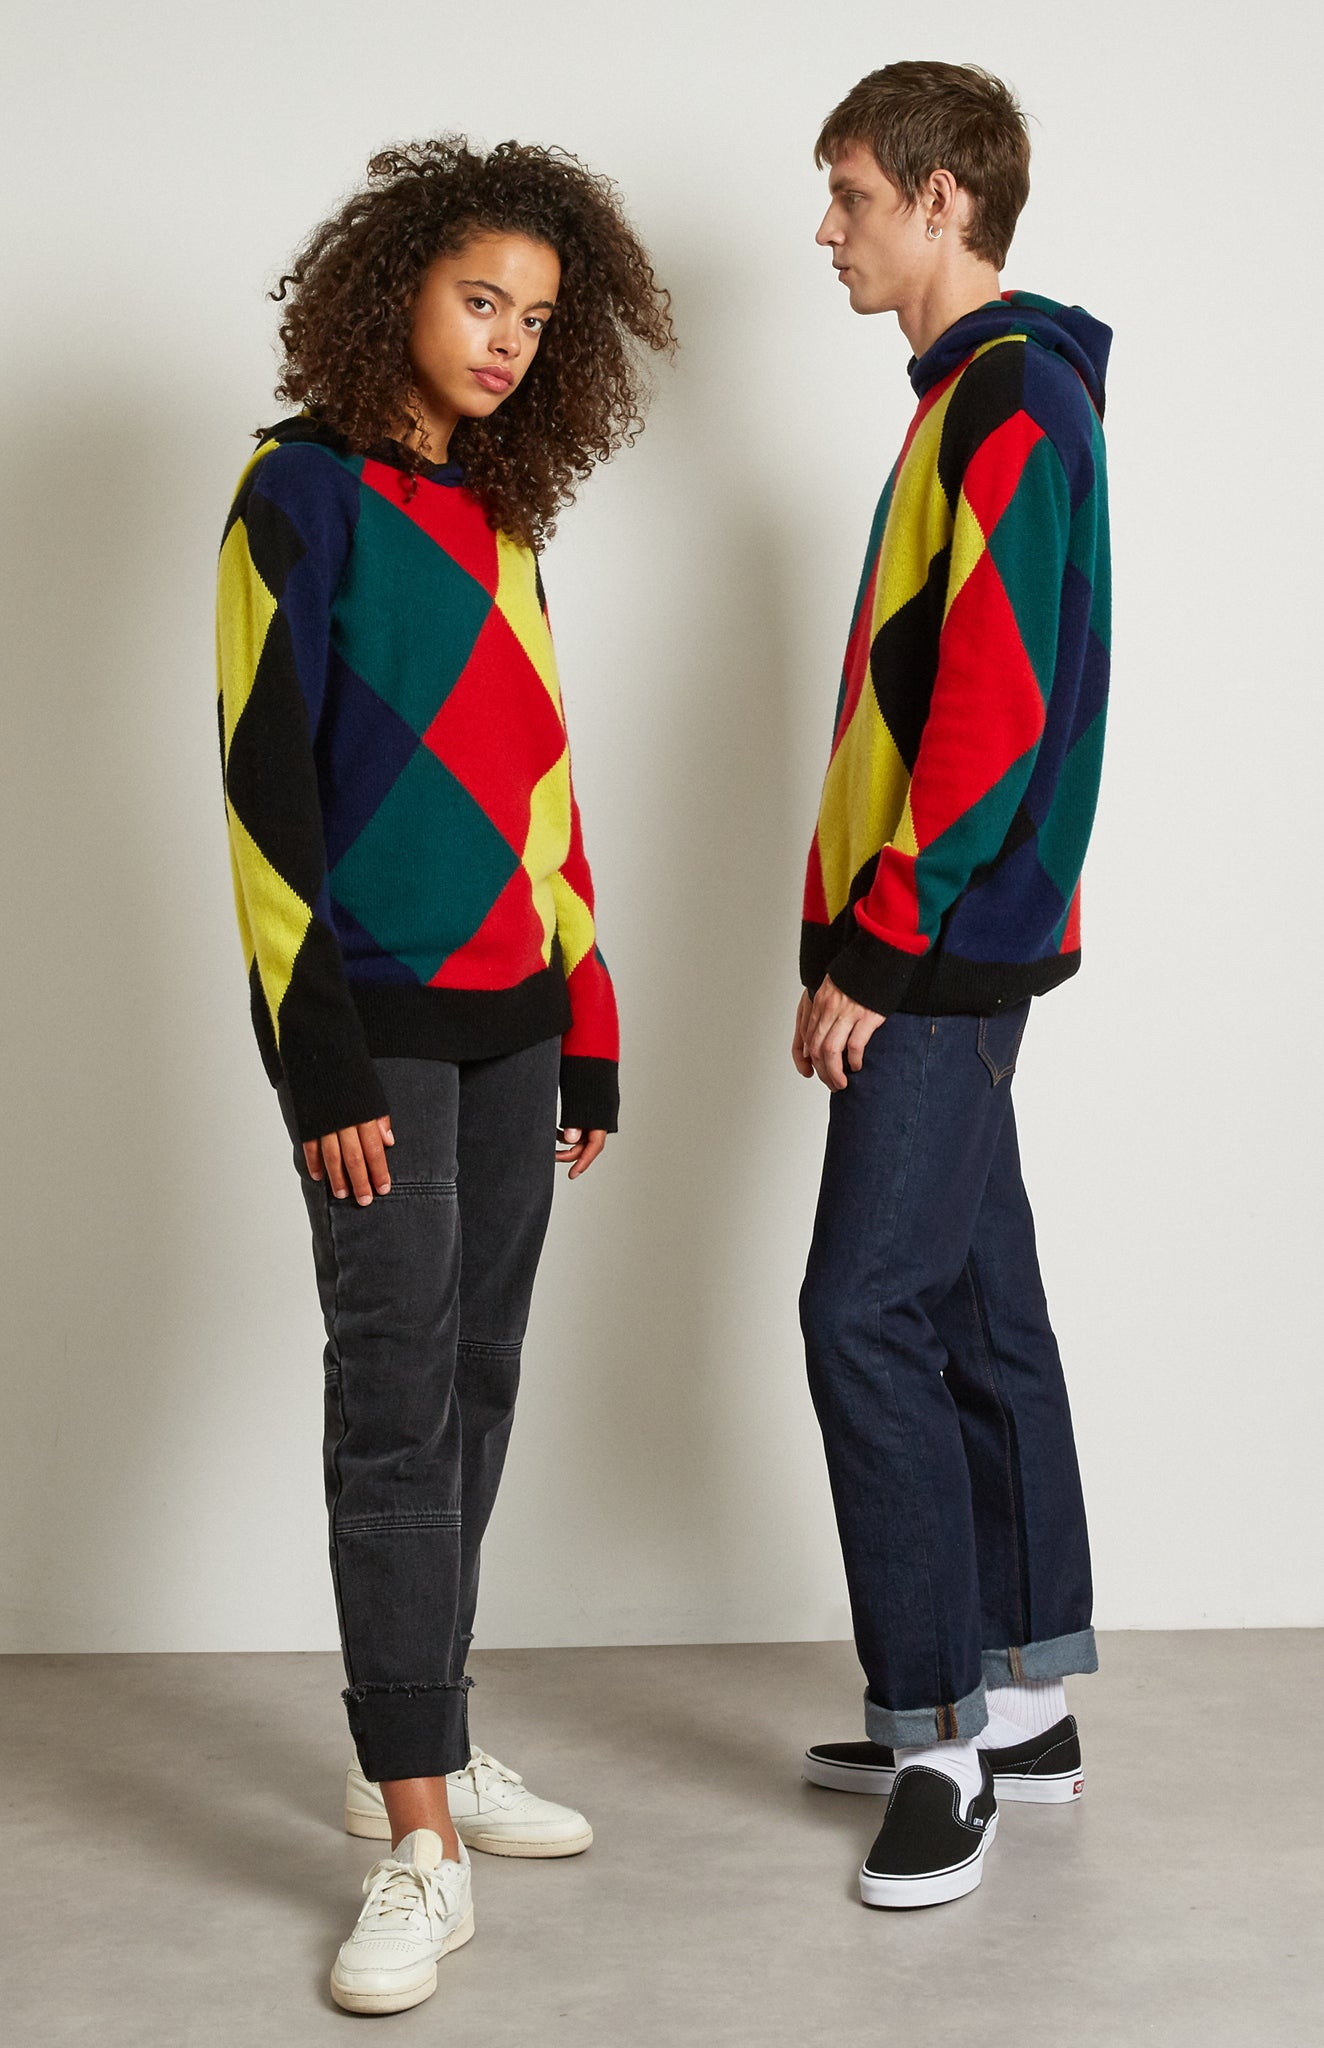 Pringle Reissued Unisex Harlequin Argyle Hoodie on female and male model